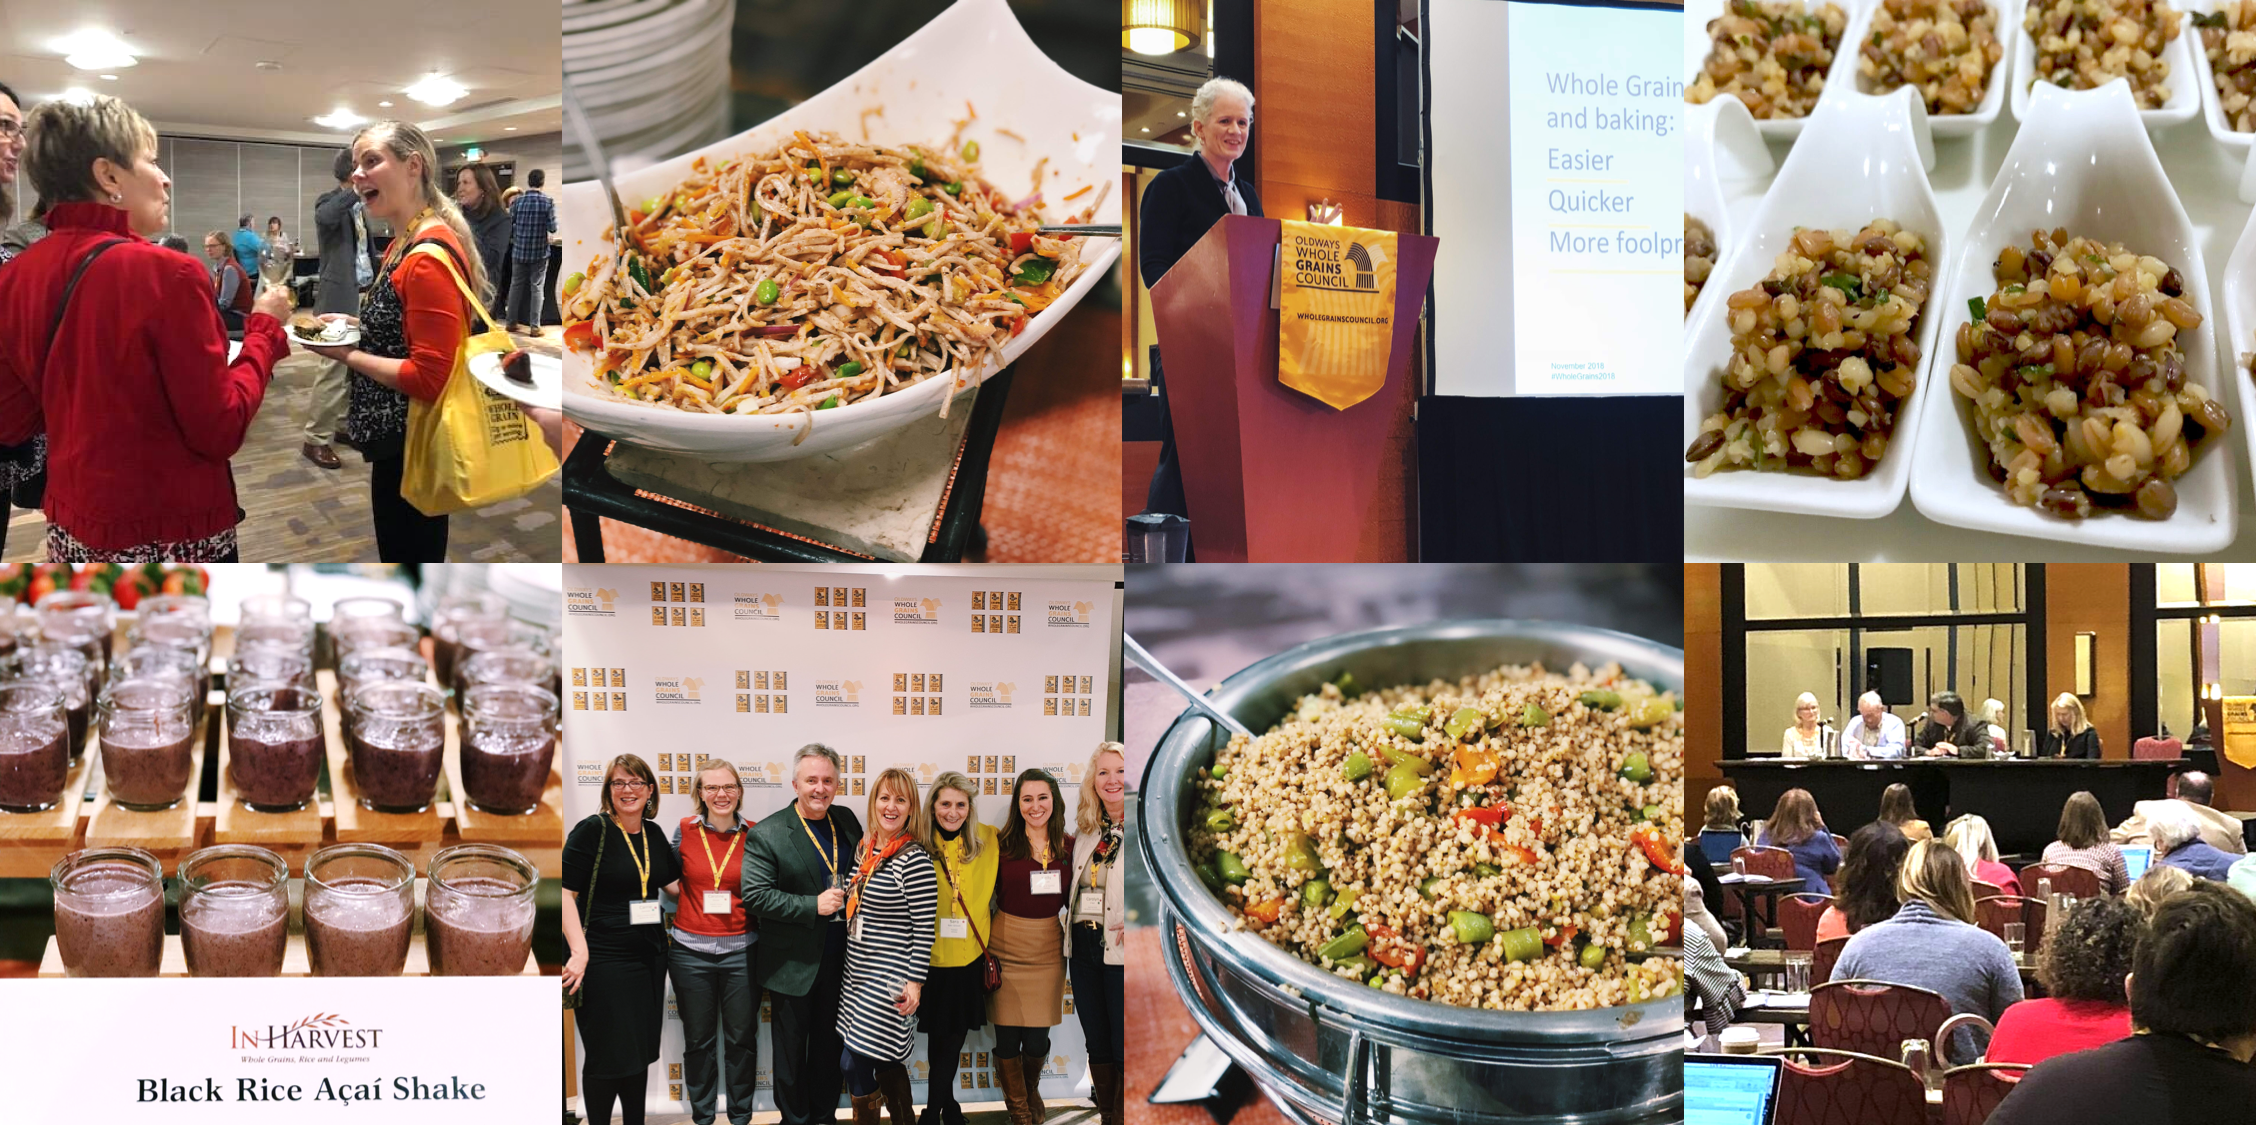 photos of food and attendees from the 2018 Whole Grains Council conference